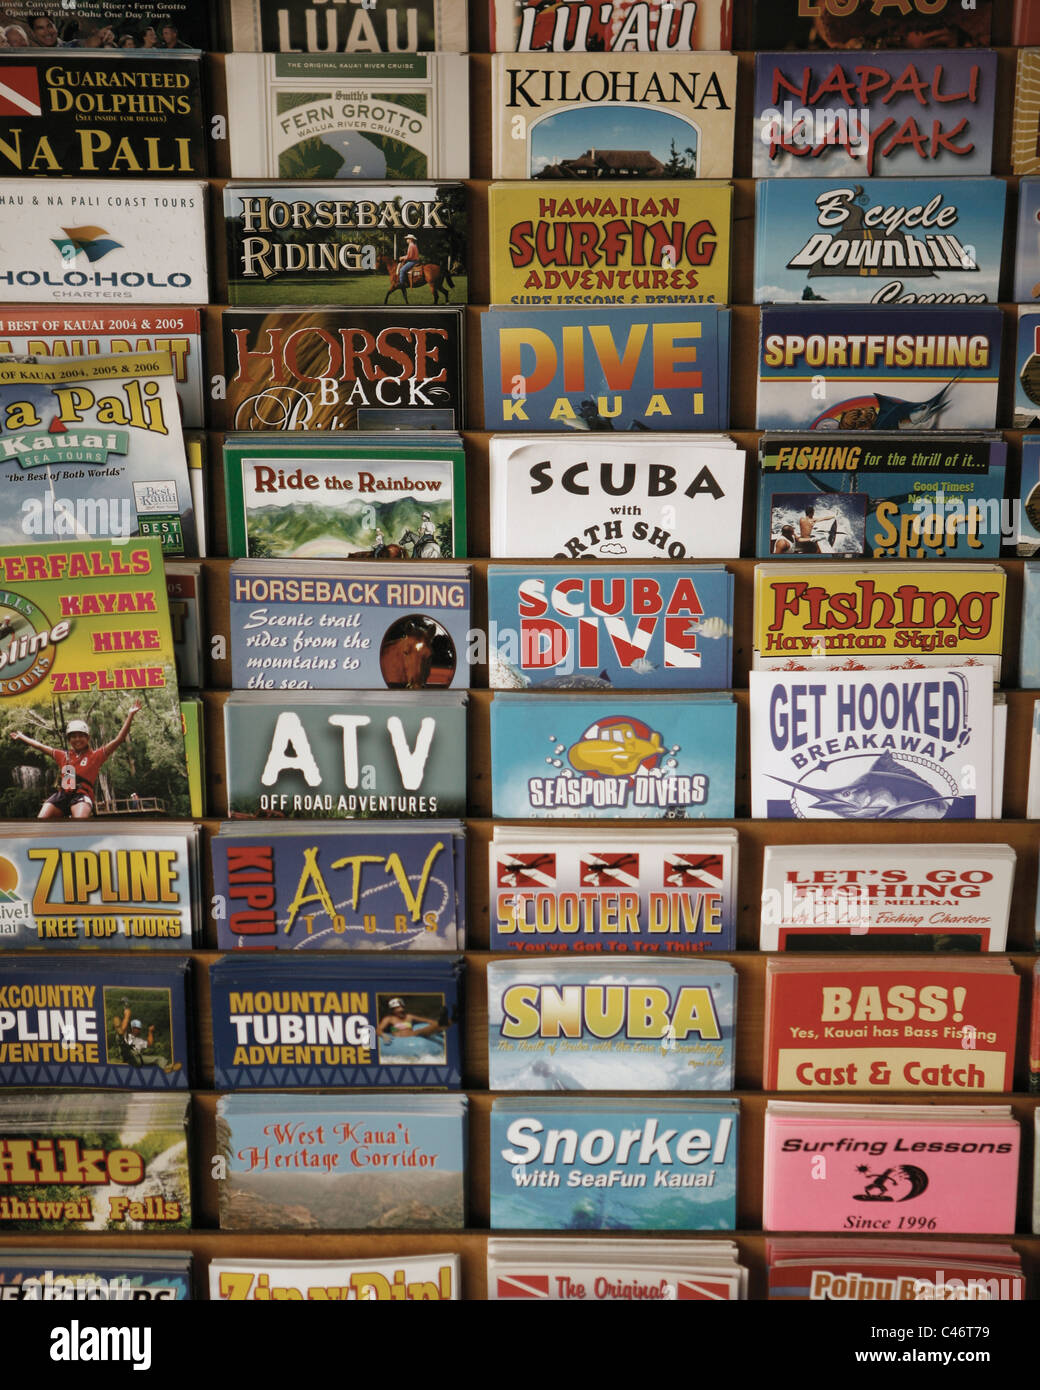 Tourist activity fliers on display in Hawaii. - Stock Image